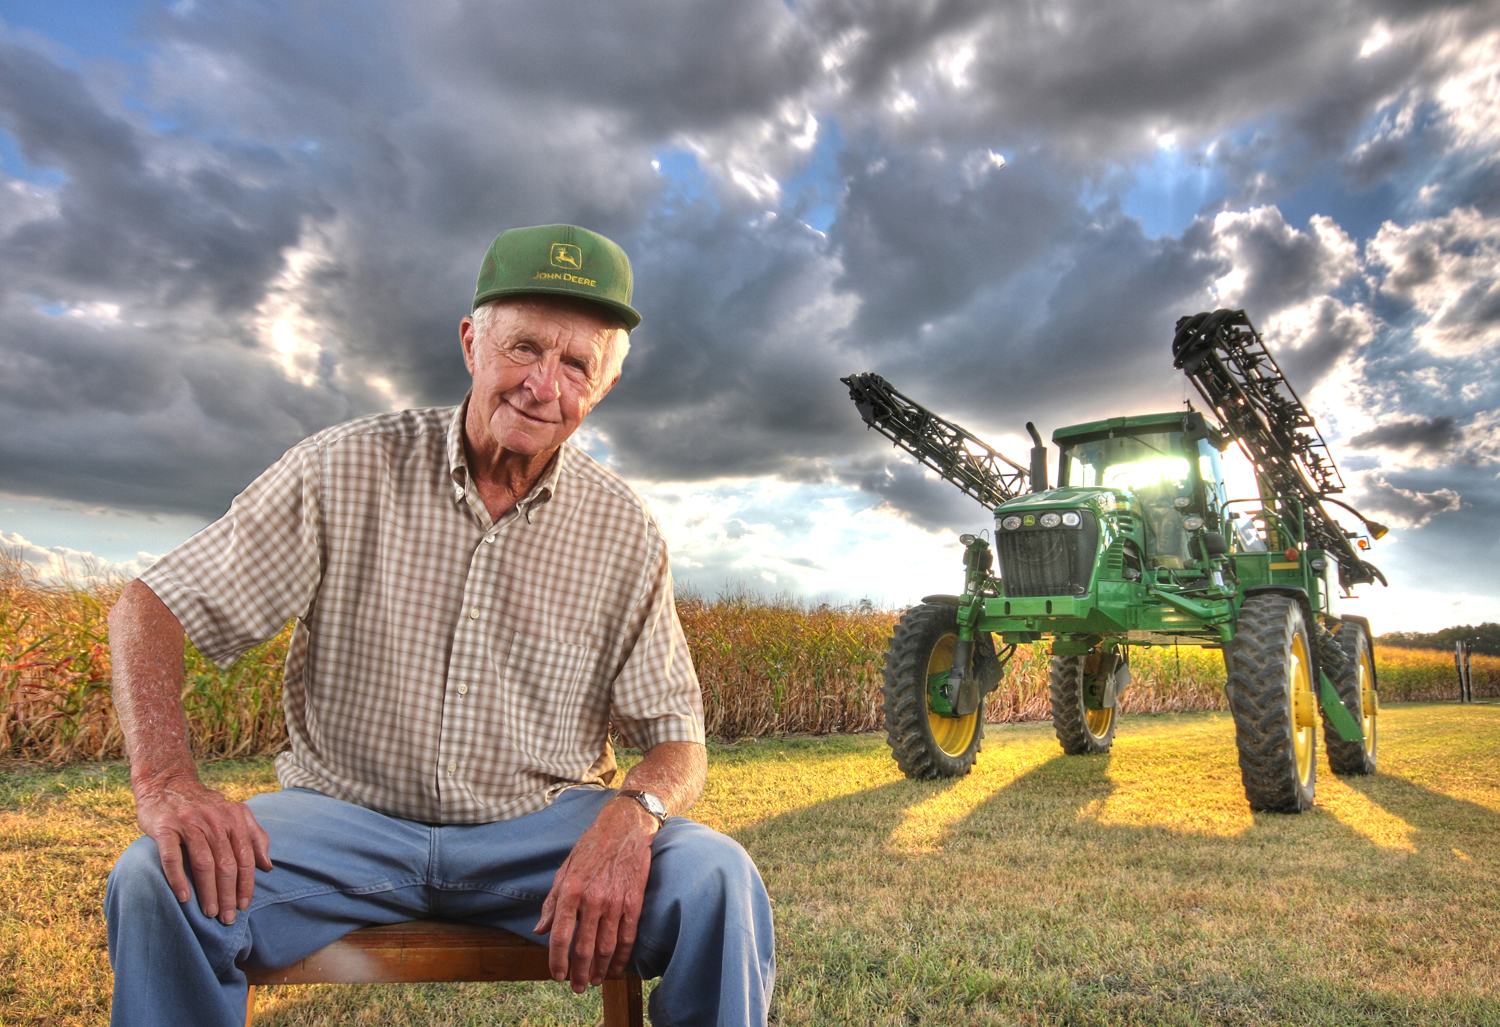 Bruce Crippen, Jerry Shaw John Deere Tractor, 2010. Color photograph, 11 x 14 inches. Courtesy of the artist